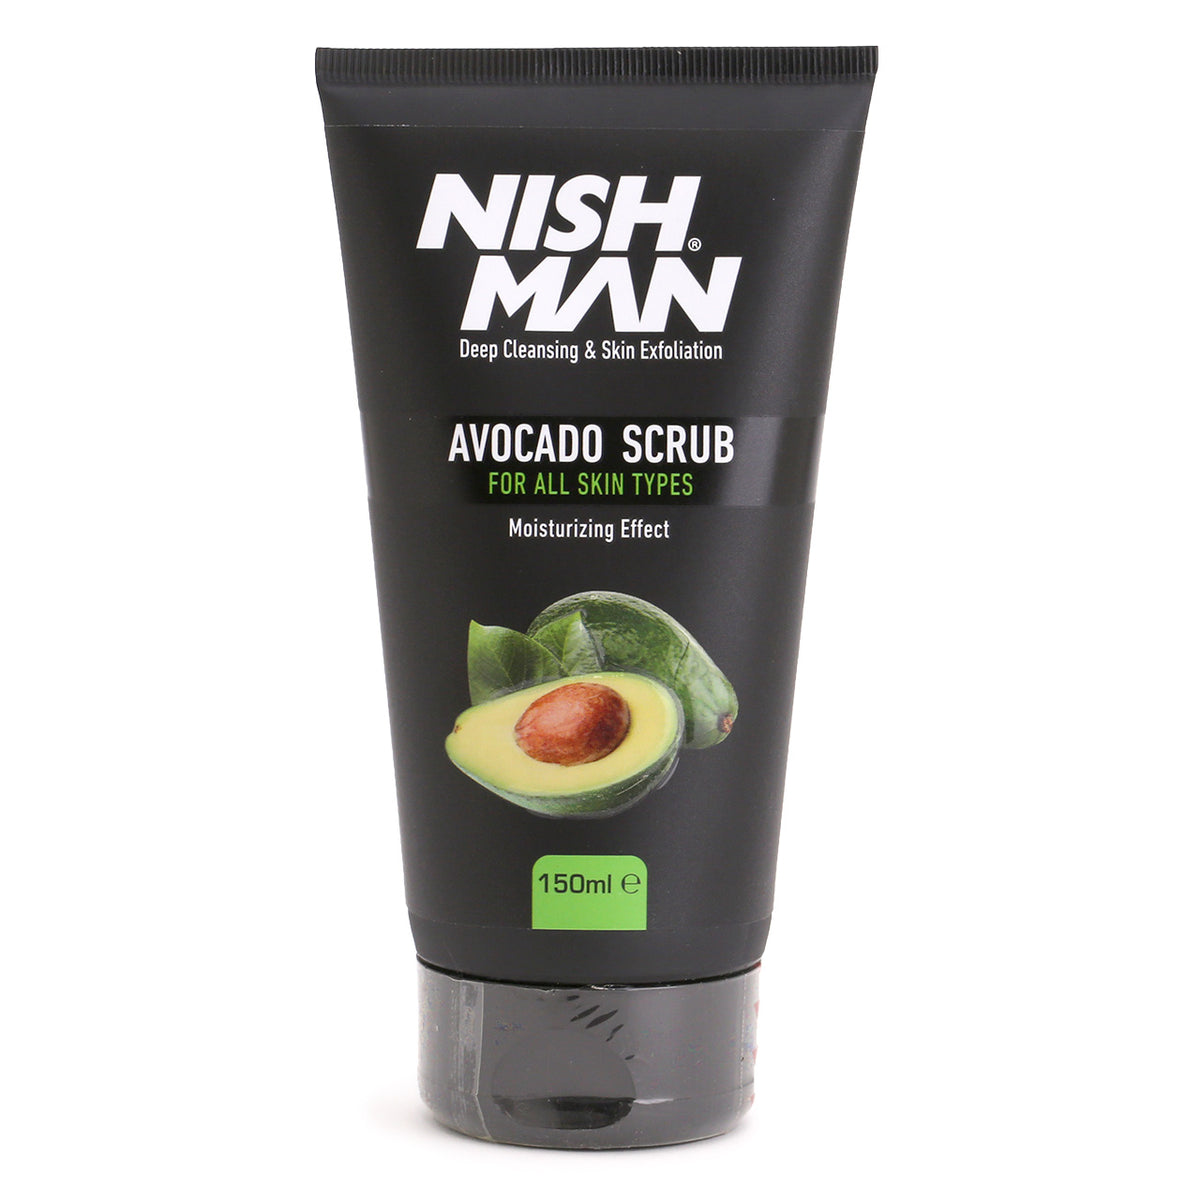 NishMan Avocado Face Scrub tube, 150ml